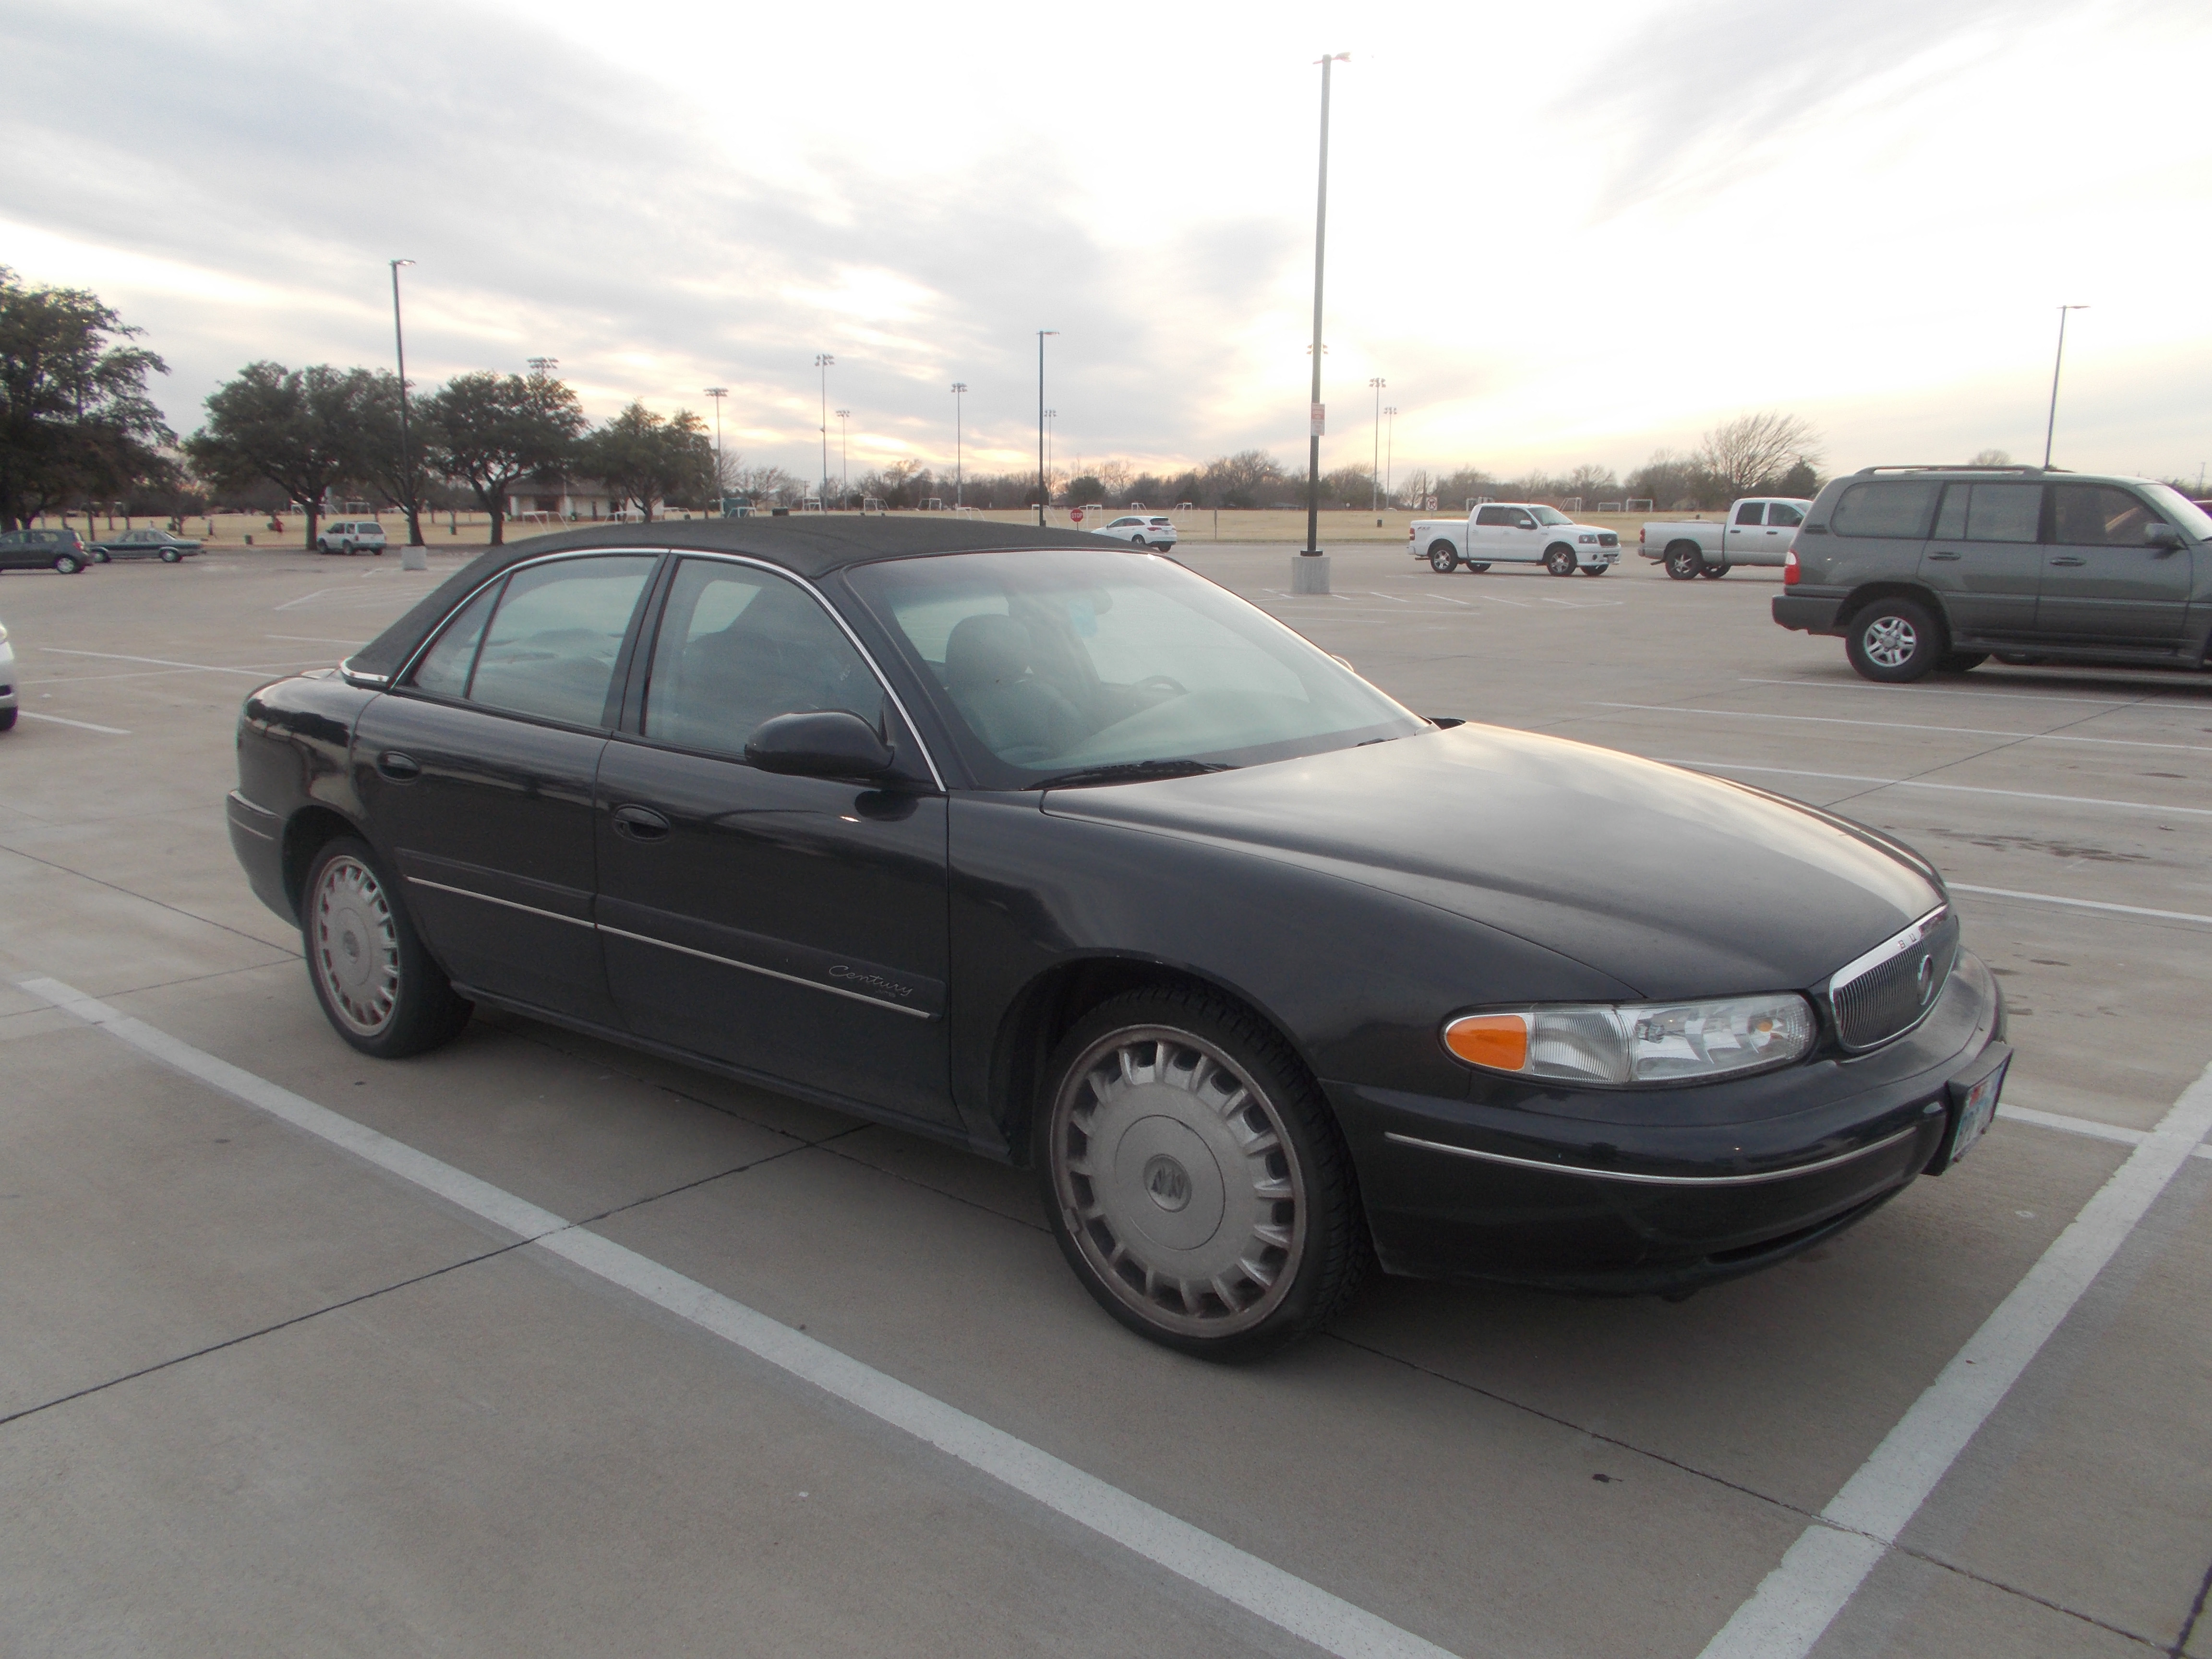 1999 buick century limited fixed by tr0llhammeren on. Black Bedroom Furniture Sets. Home Design Ideas